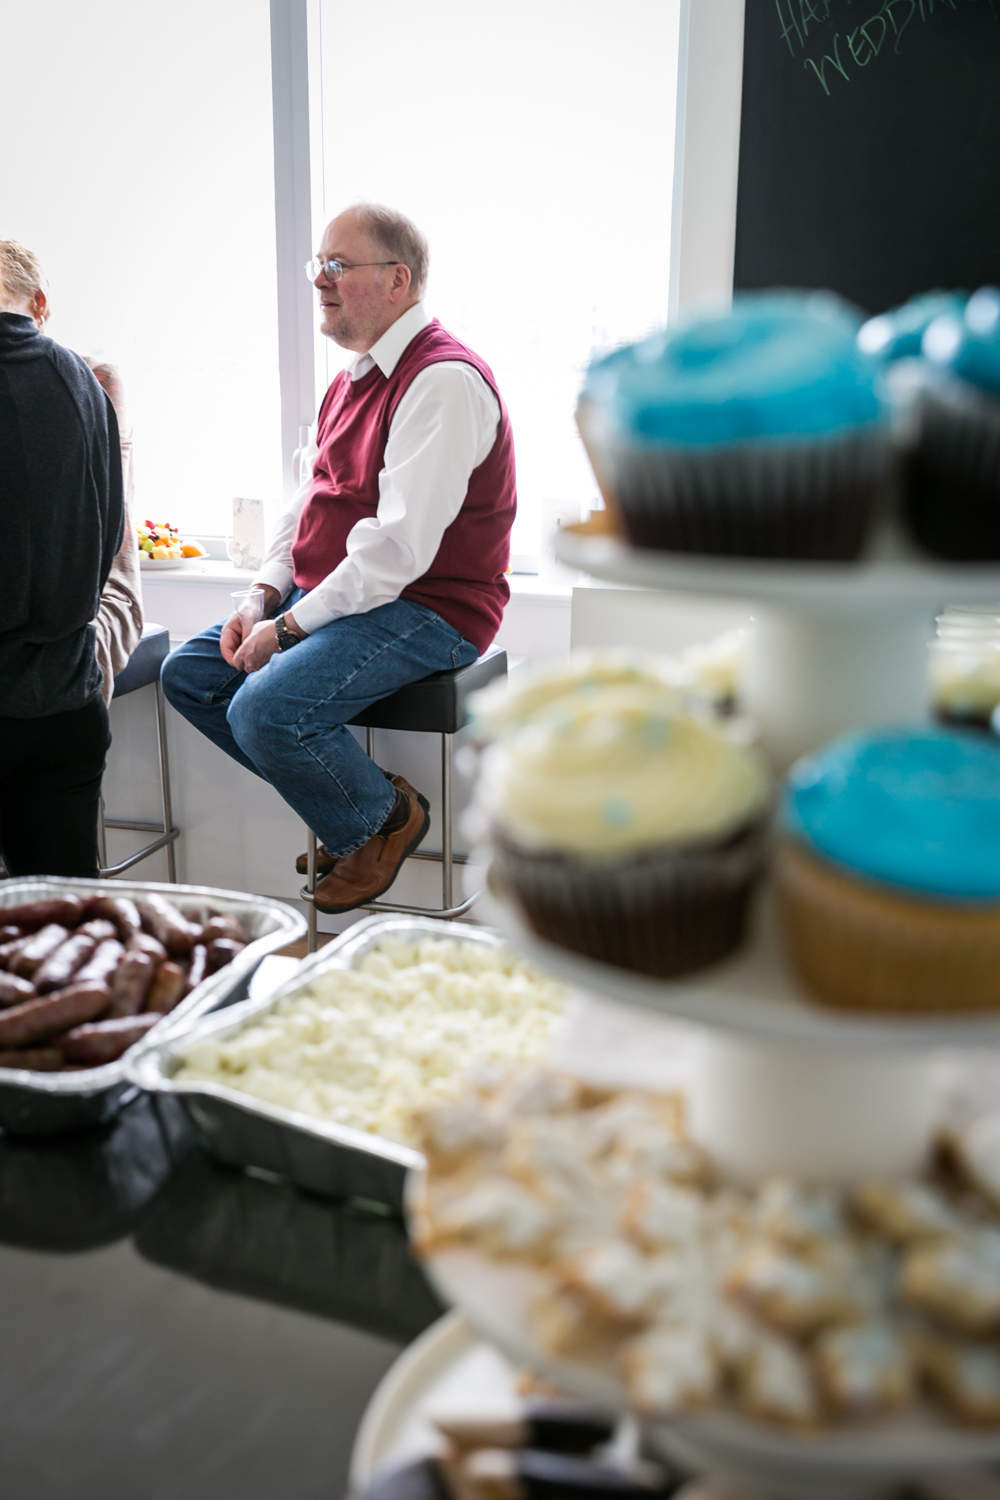 View through cupcakes of man sitting by window